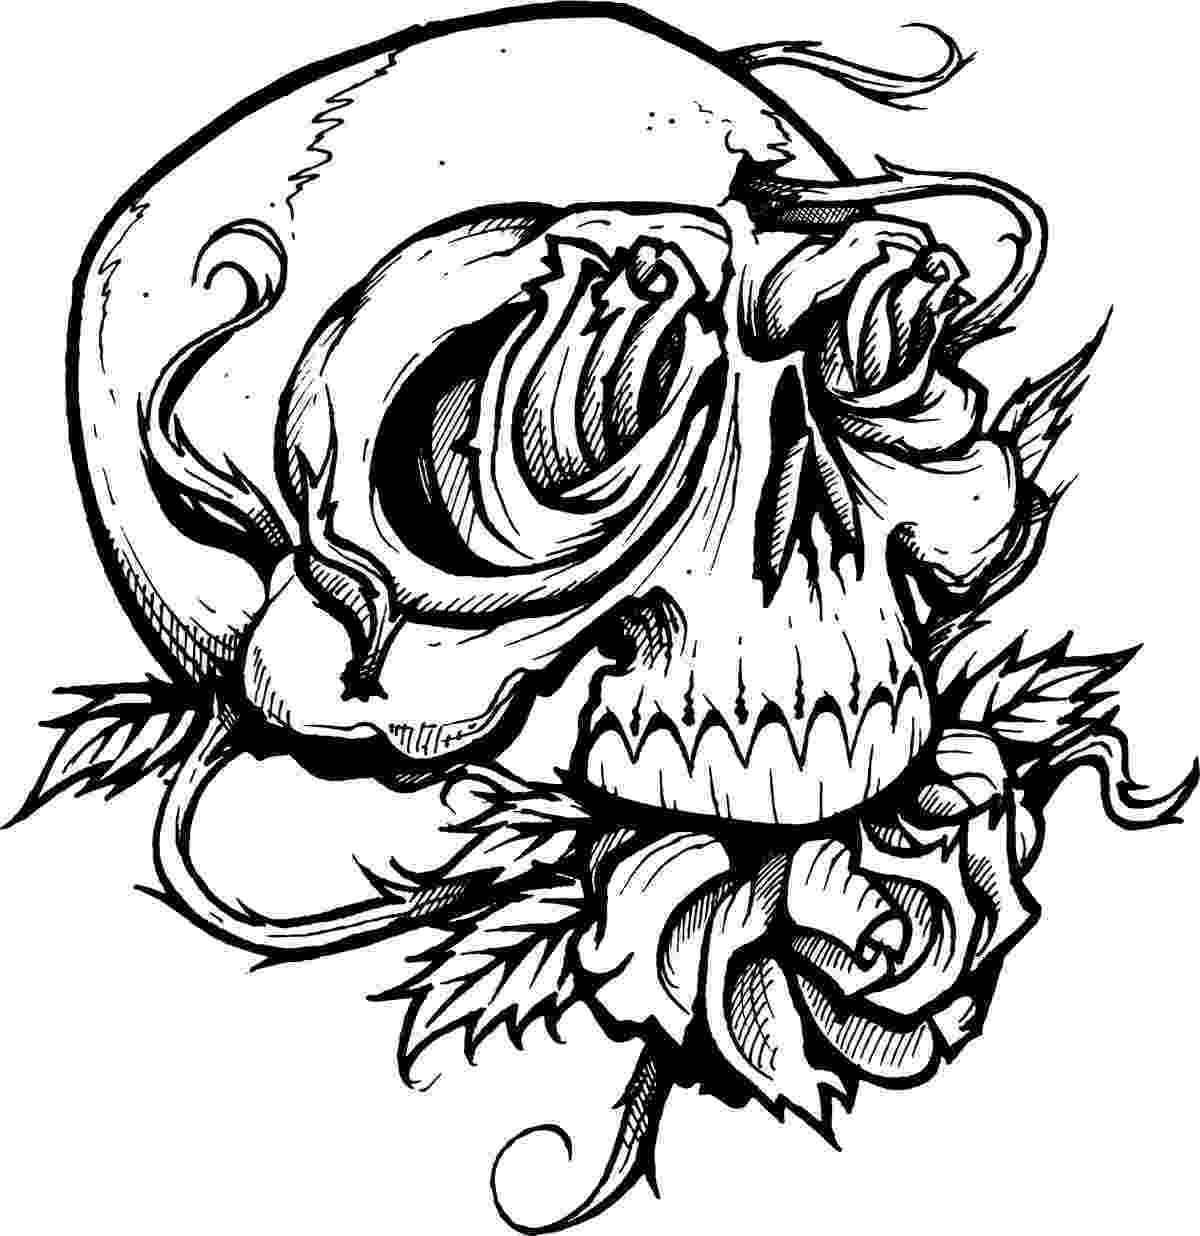 coloring pages for adults halloween 89 best images about scarecrows on pinterest coloring pages adults coloring for halloween